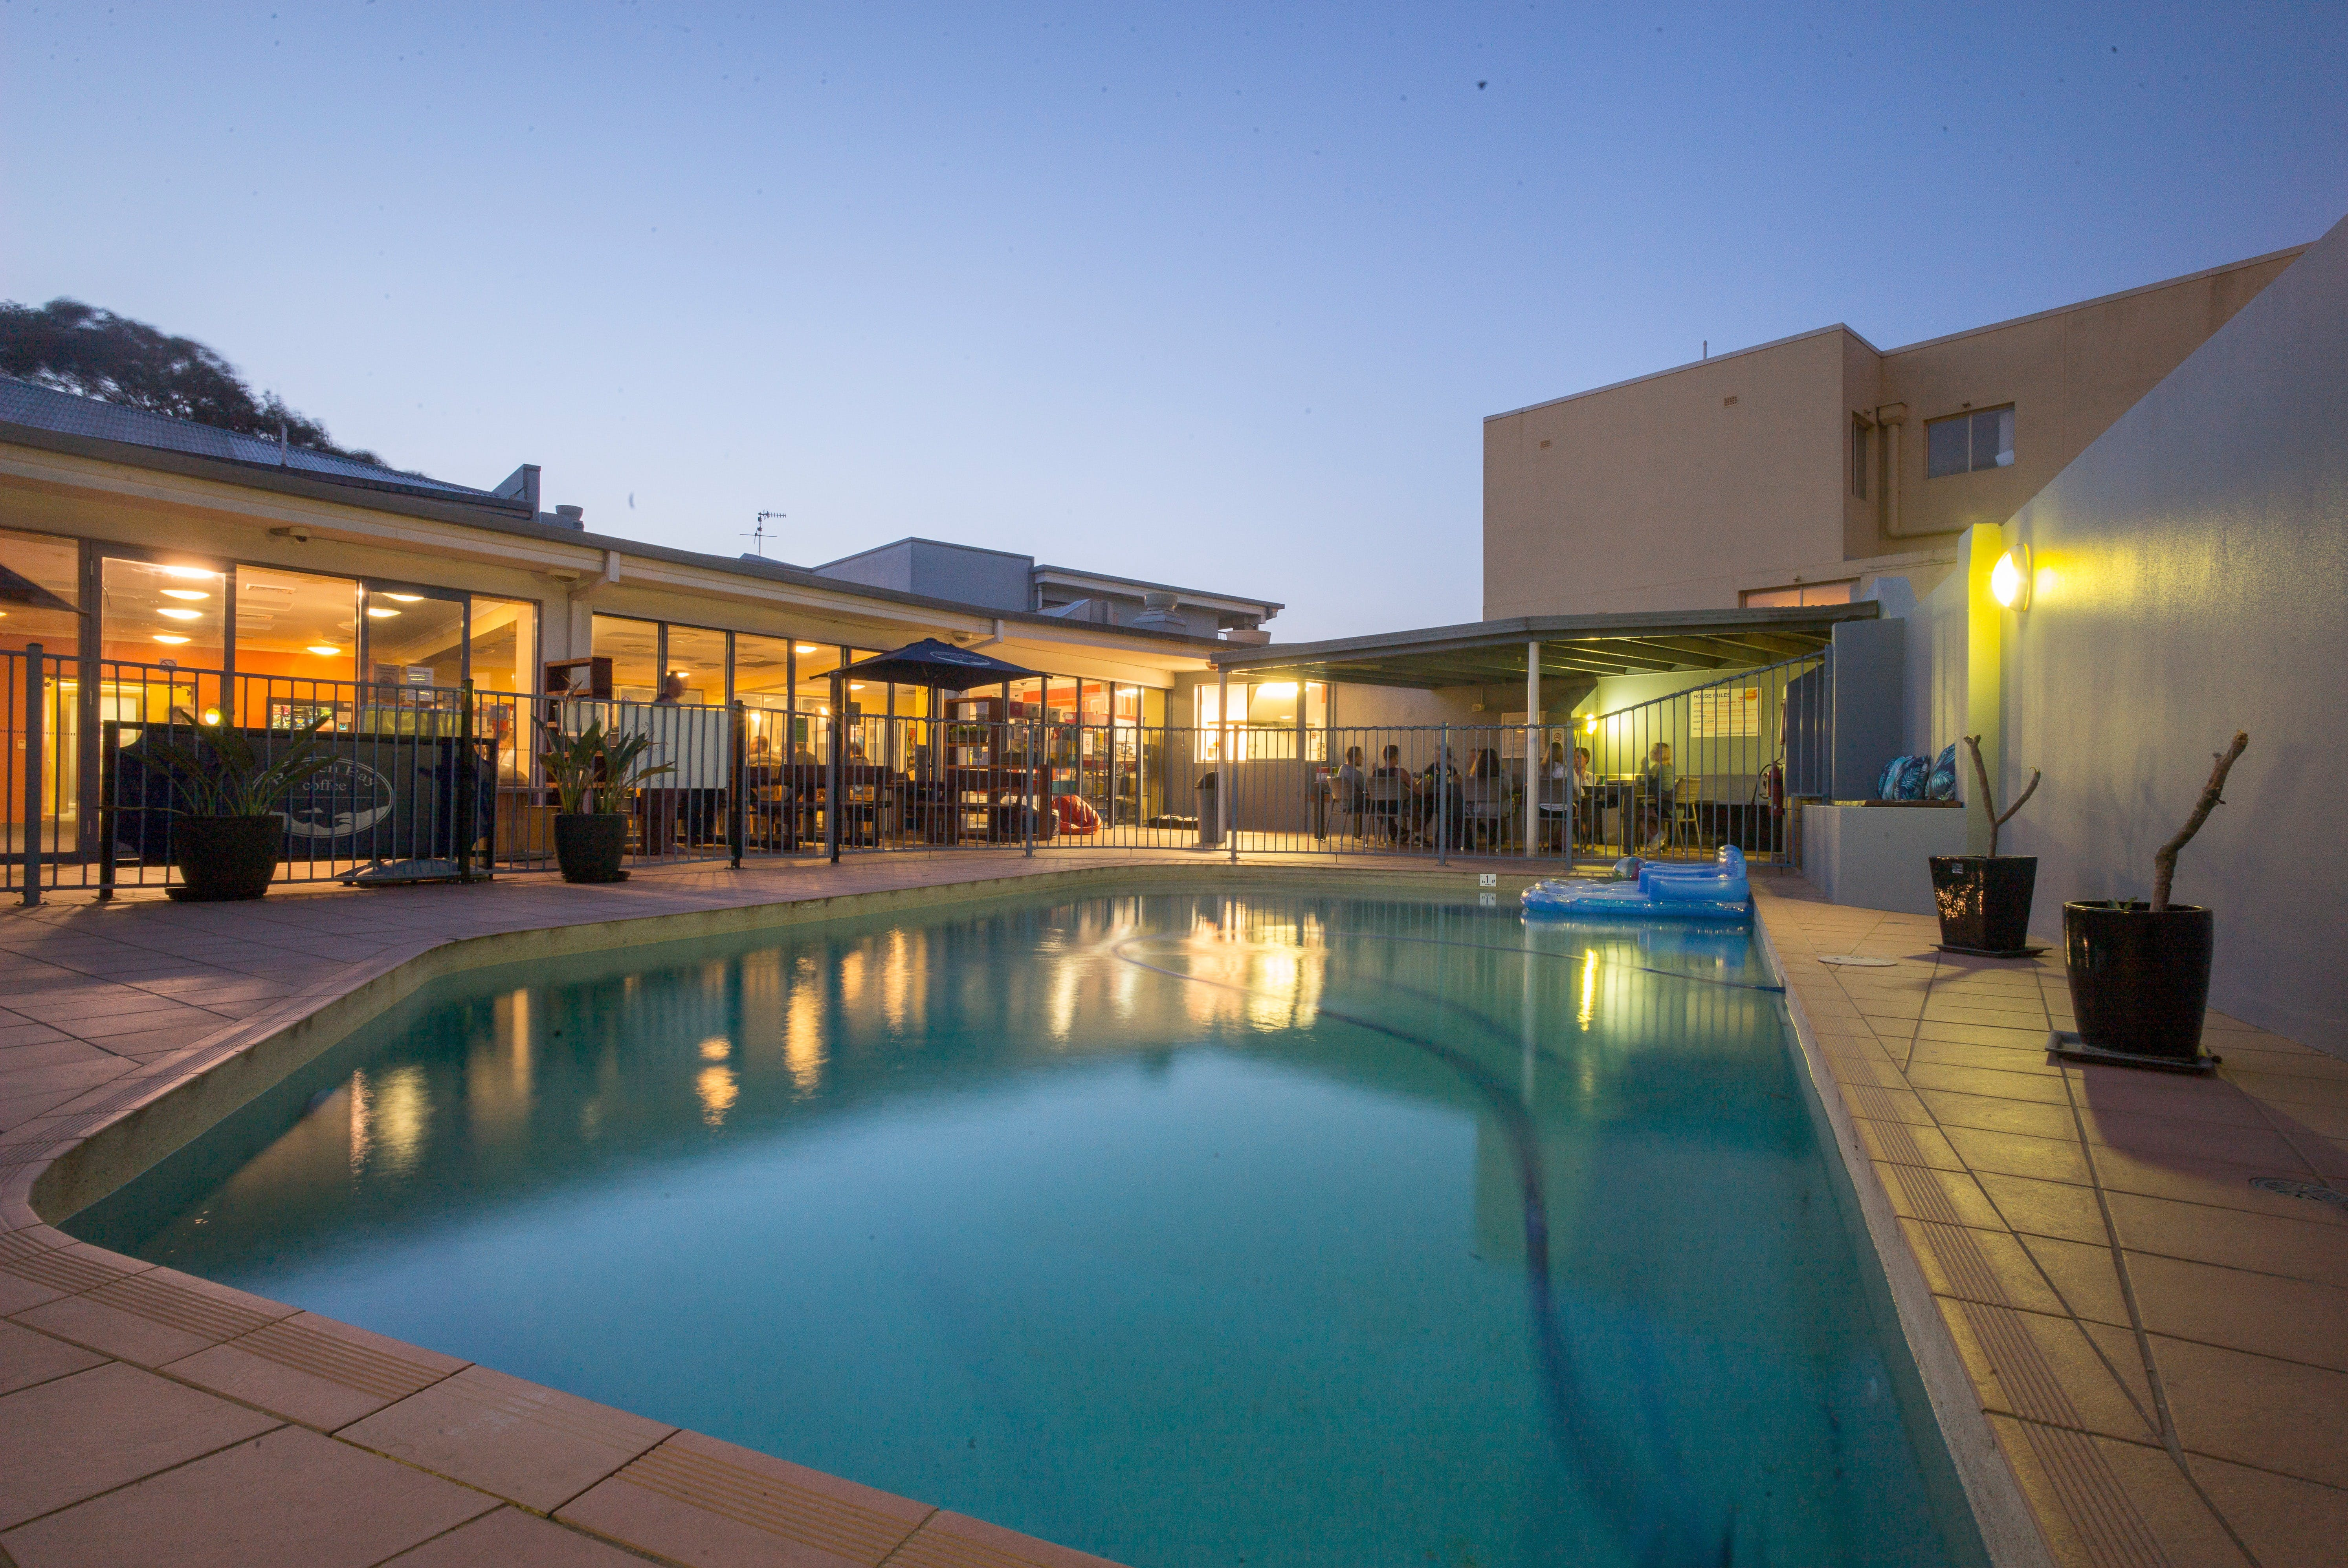 Sydney Beachouse YHA - Collaroy - Accommodation in Brisbane